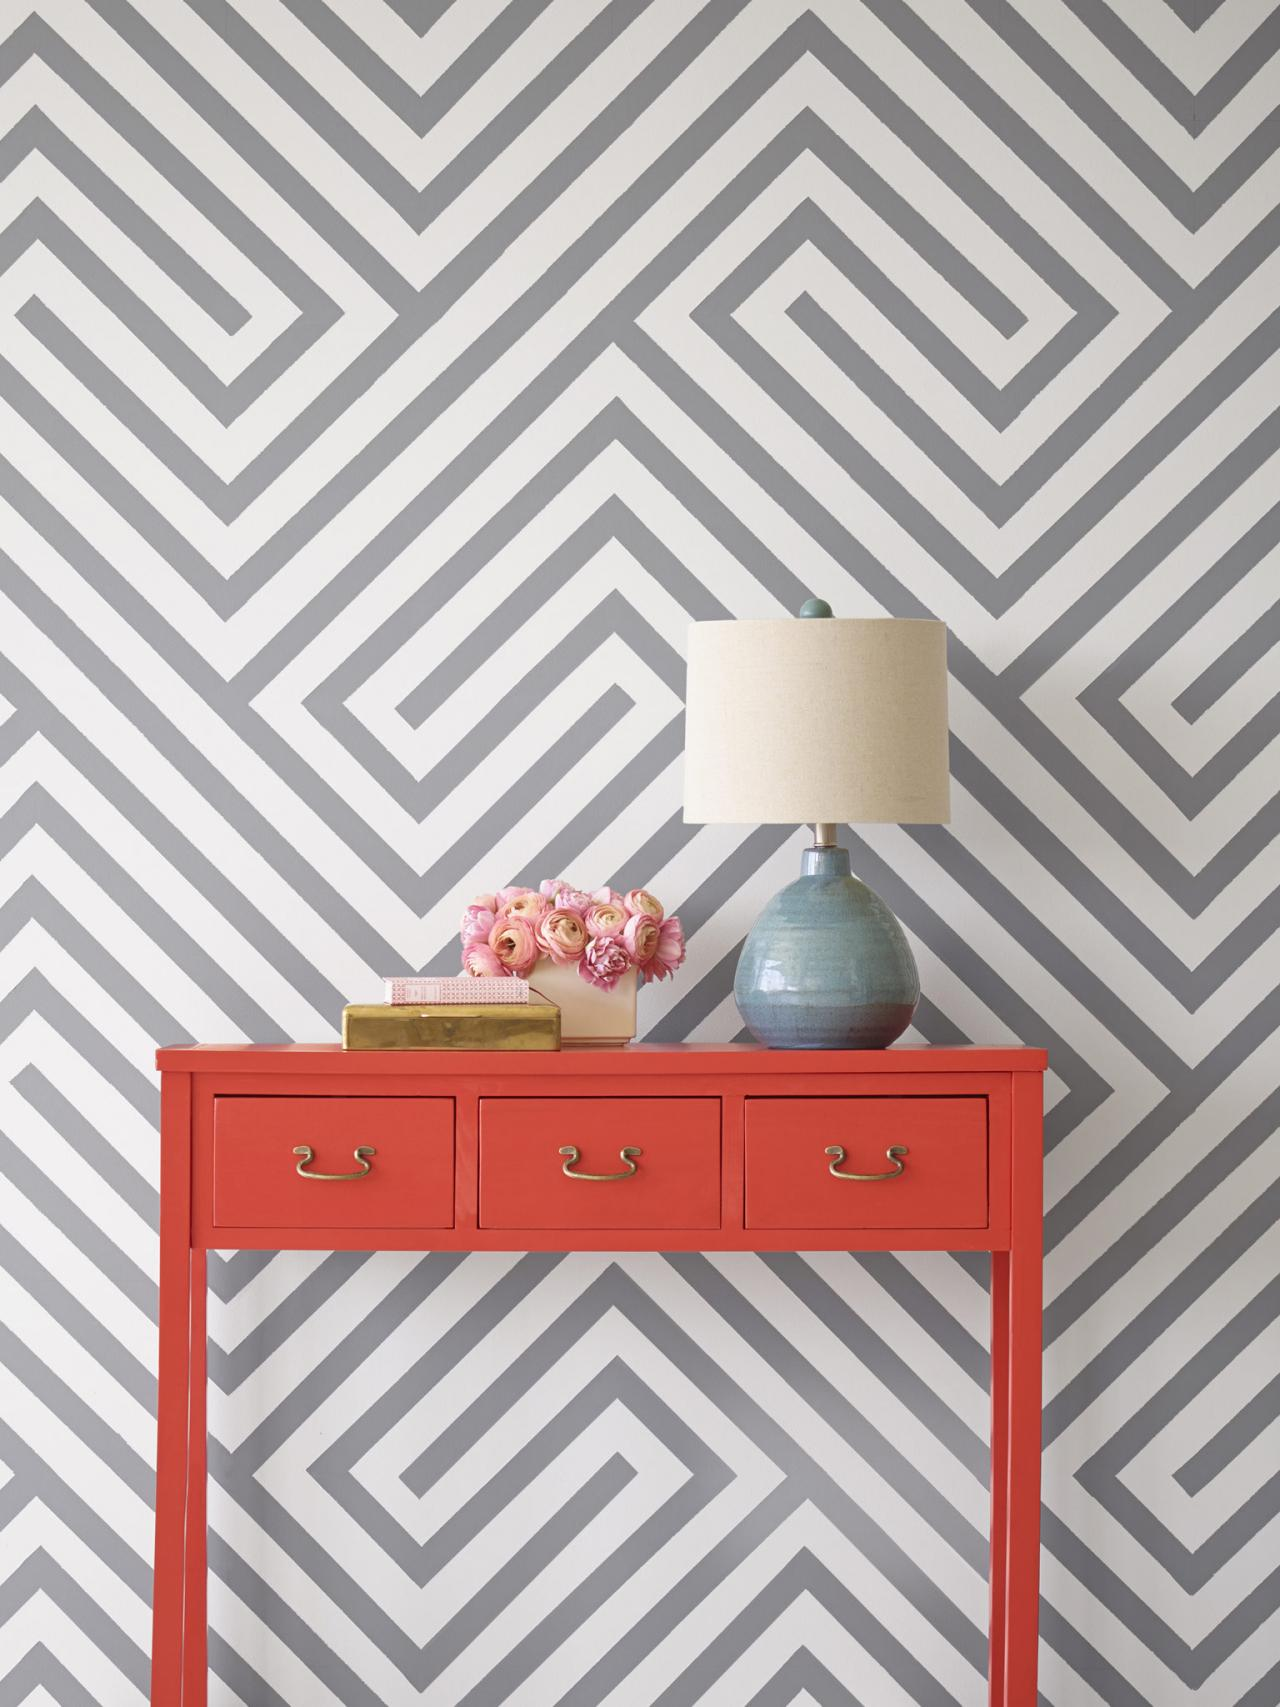 Wall Paint Design Stripes : Painting diagonal stripes on a wall hgtv